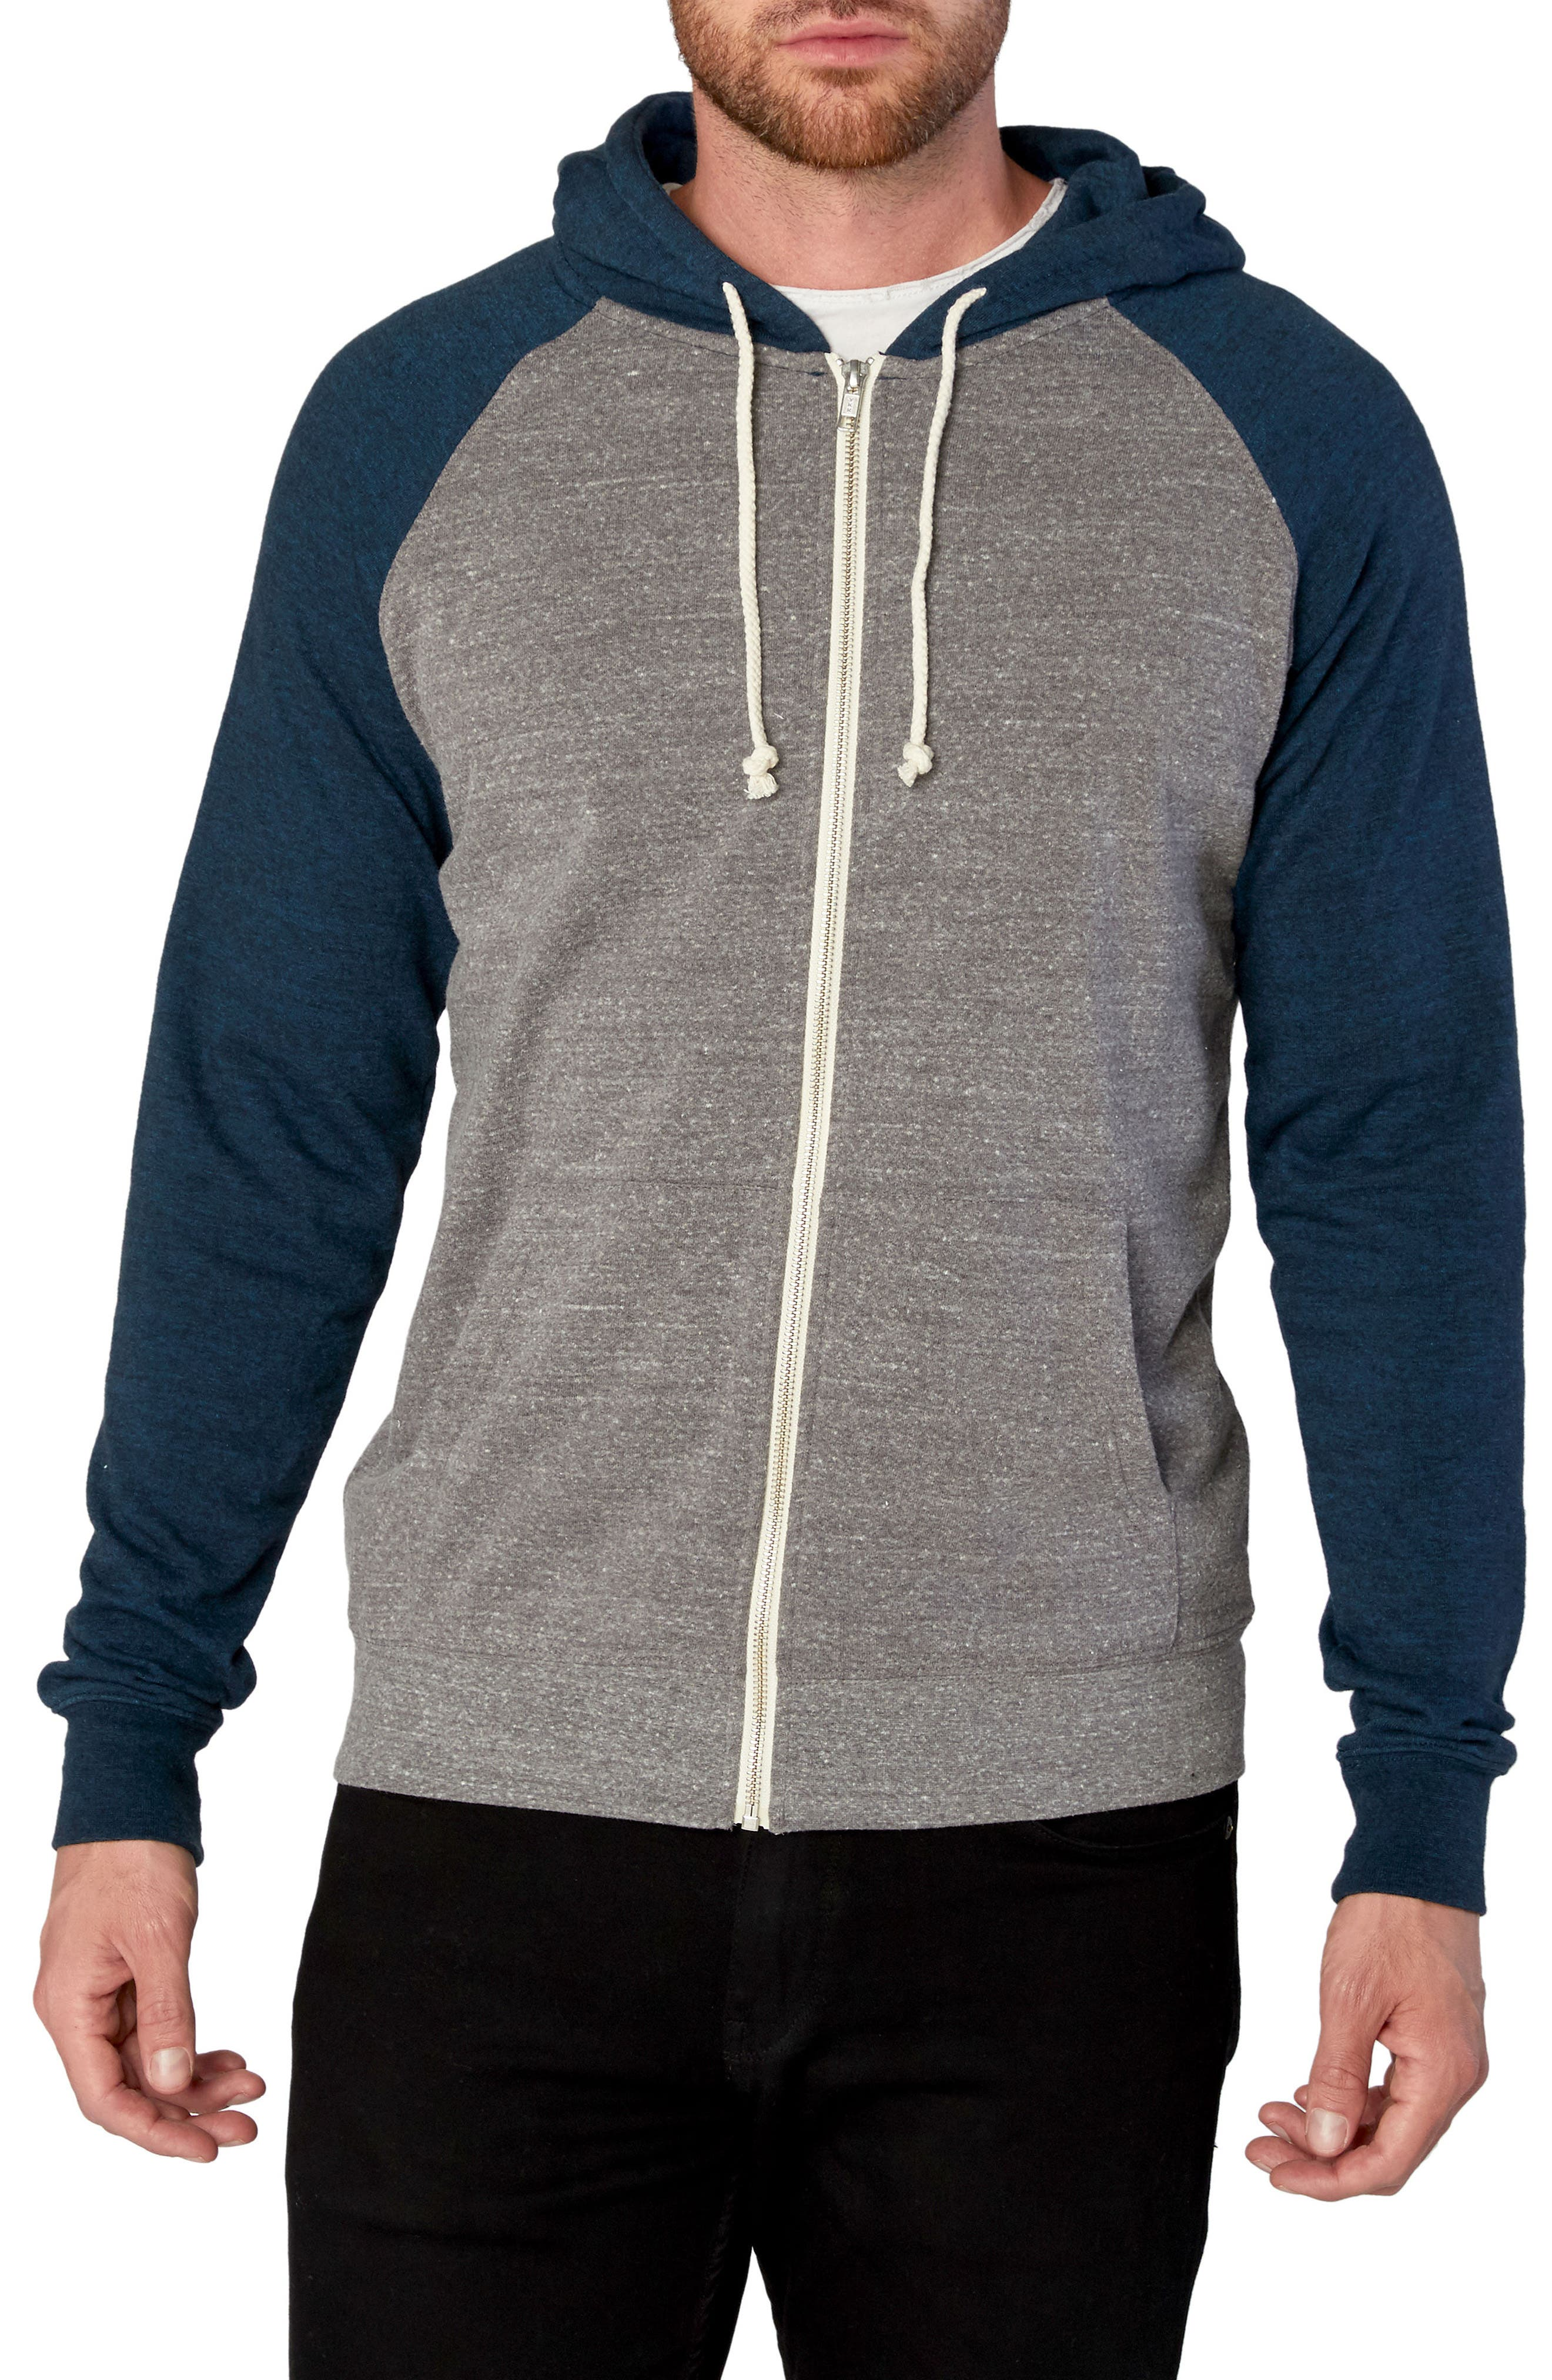 Threads for Thought Raglan Hoodie,                             Main thumbnail 1, color,                             Heather Grey/ Midnight